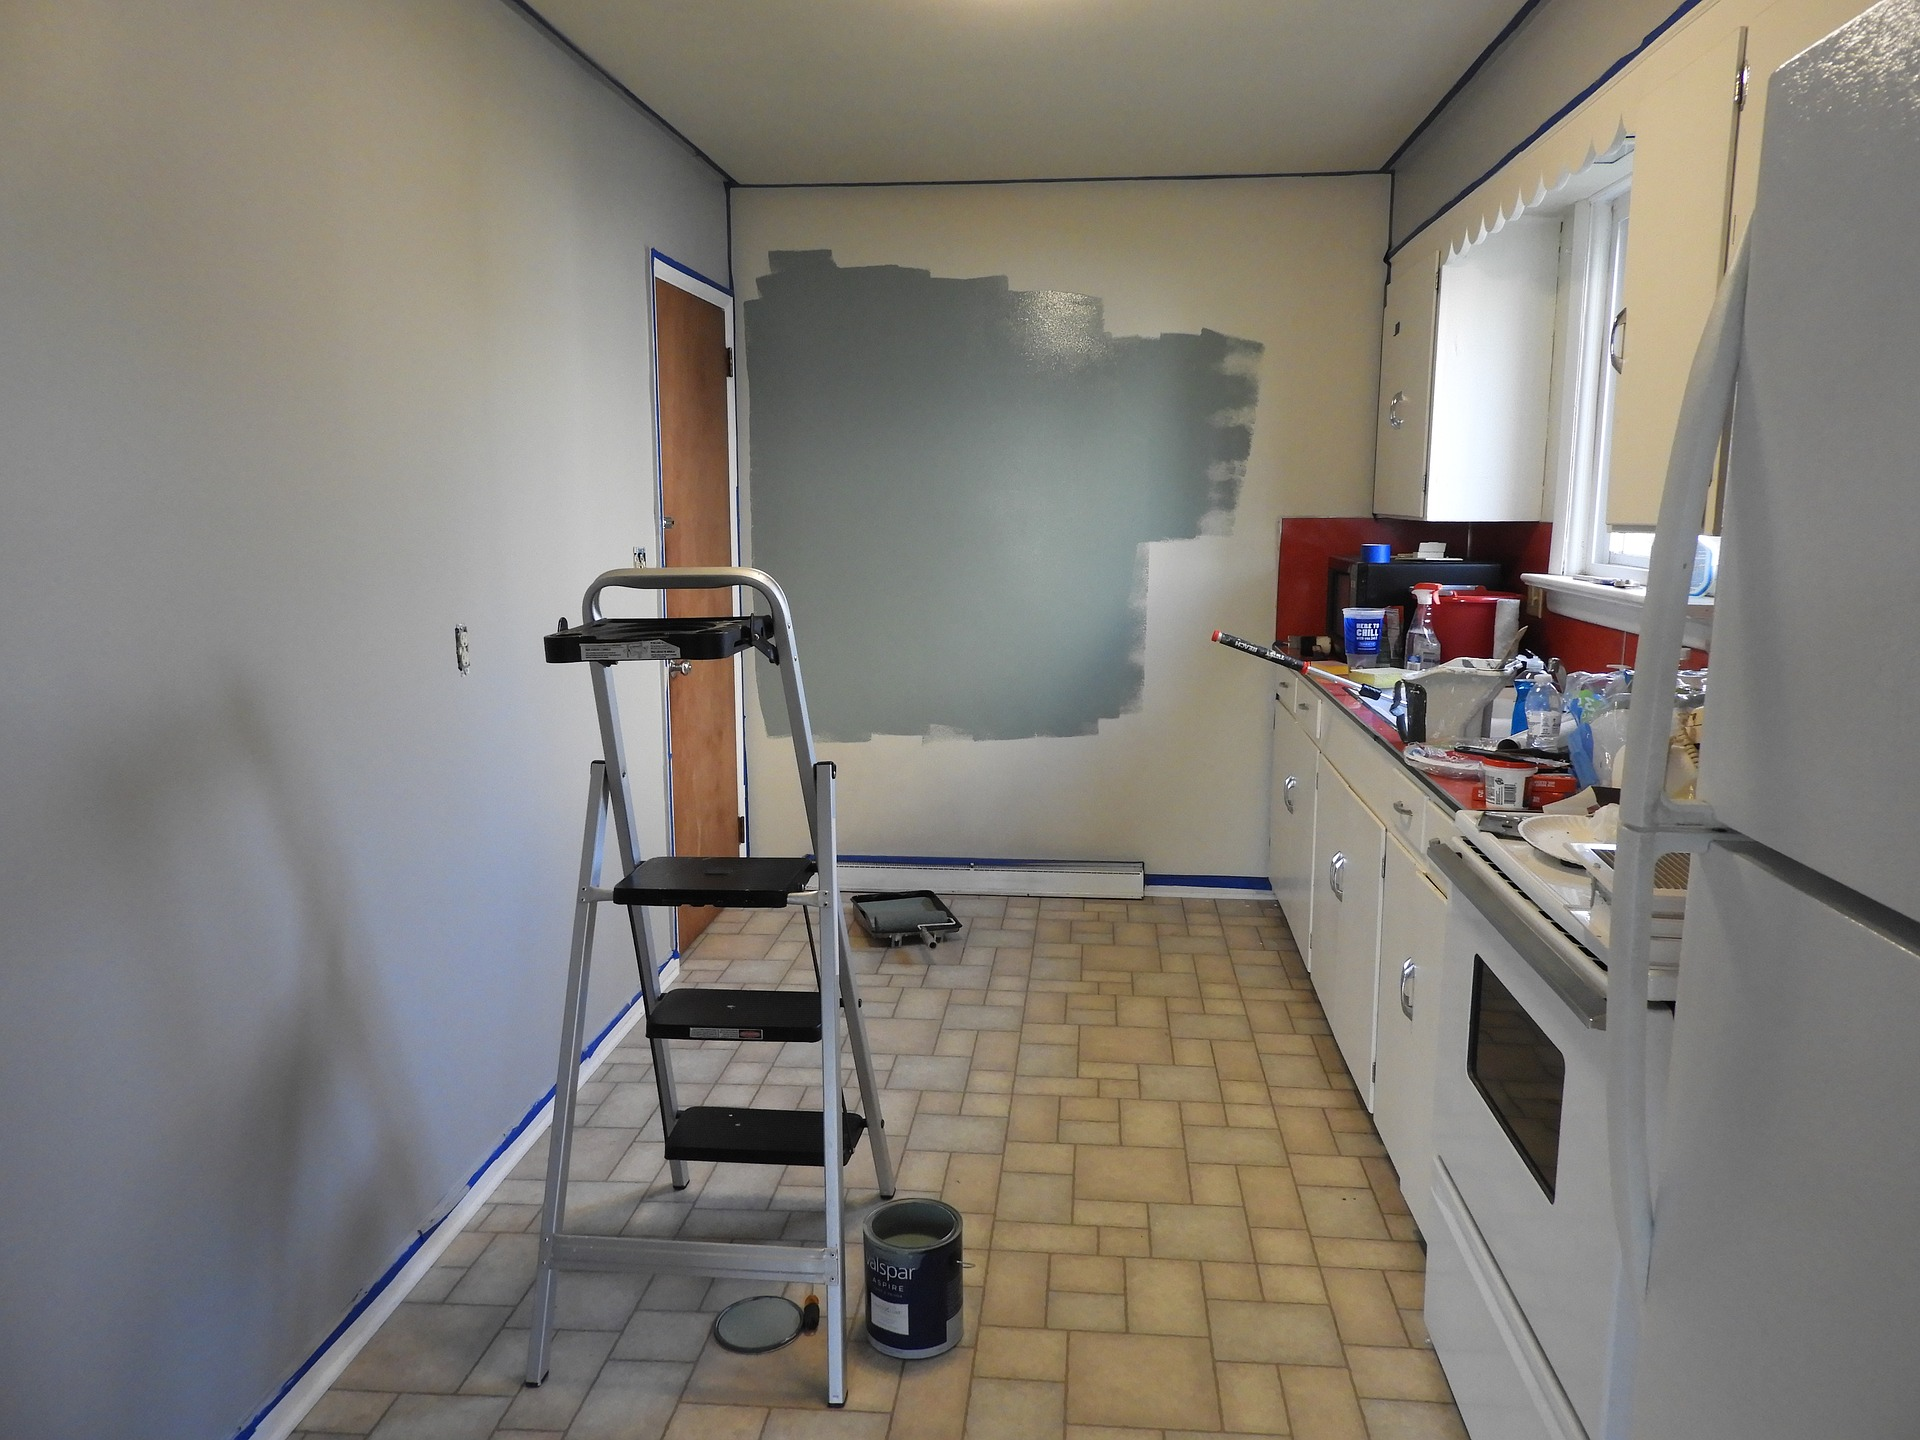 Check out these kitchen remodel tips!